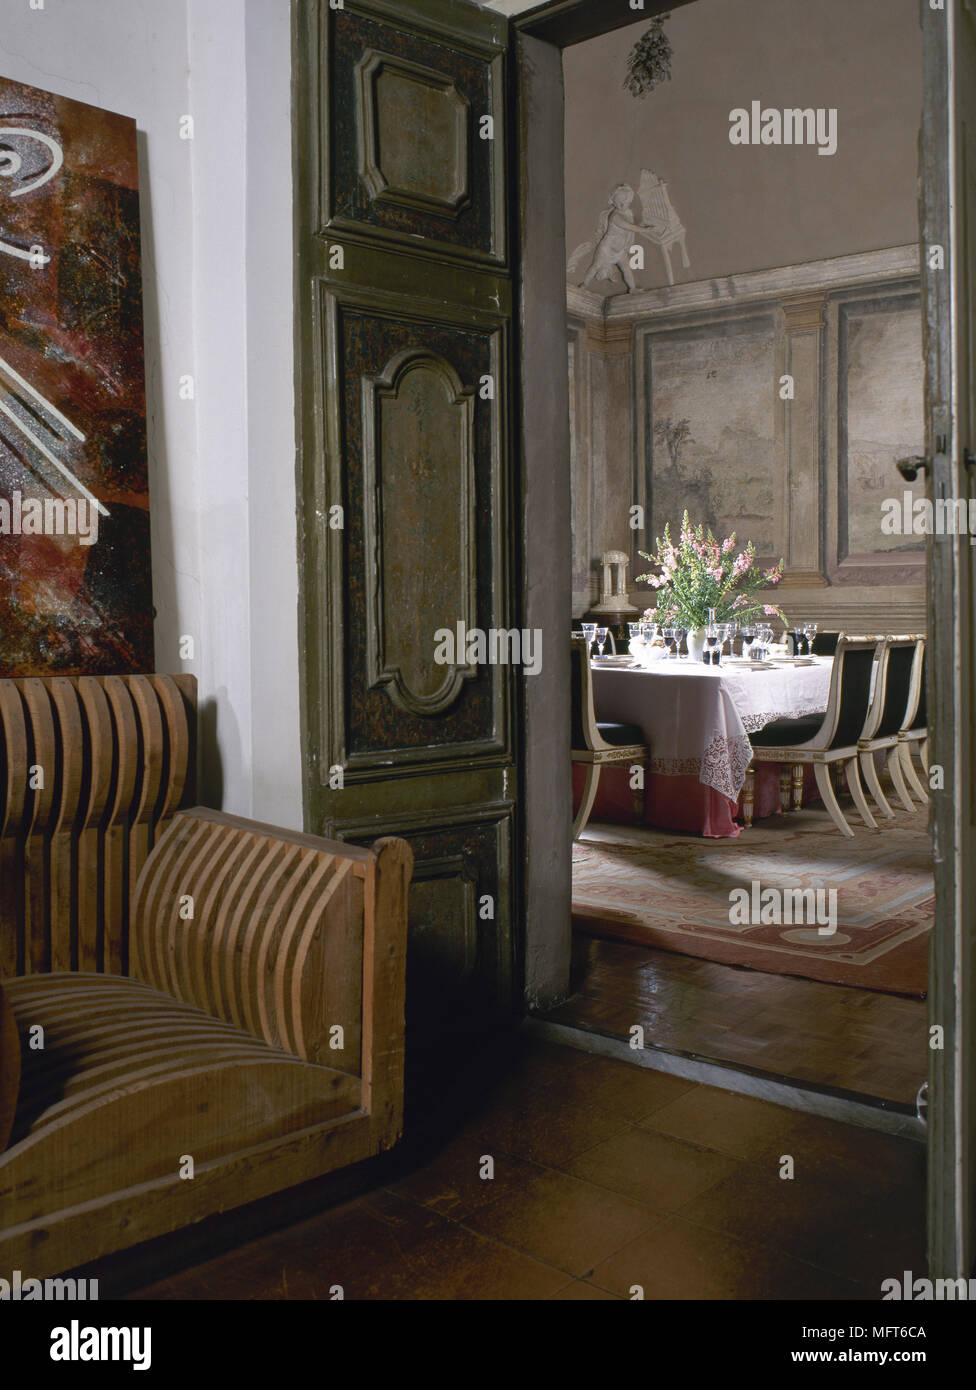 View Through The Panelled Doors Of A Seating Area To A Traditional Dining  Room With Painted Wall Murals And A Dining Table And Chairs.